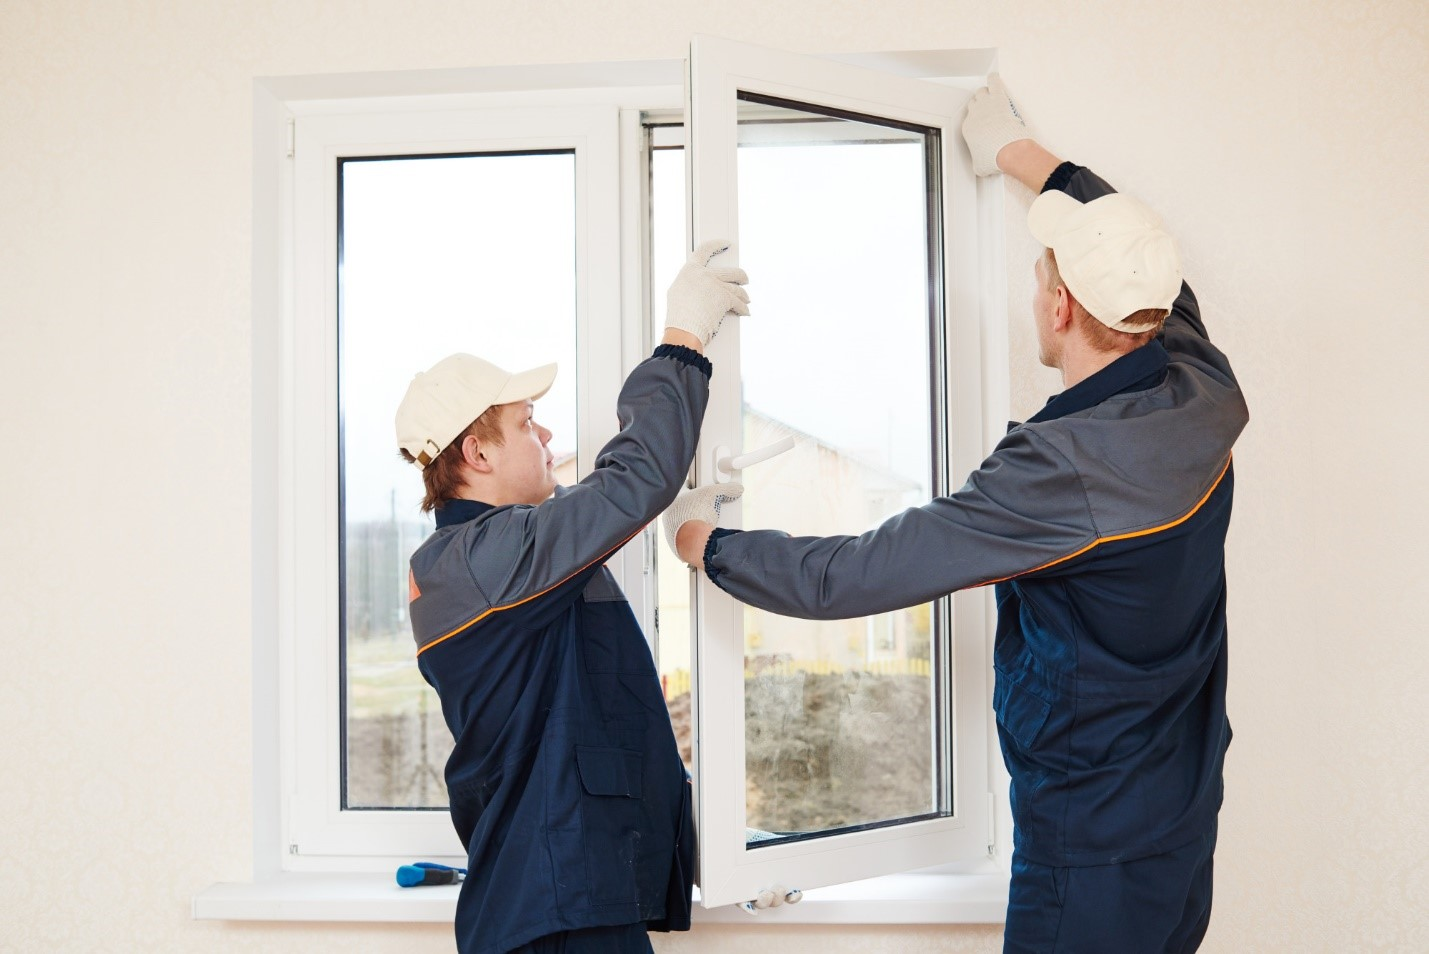 5 Things to Know Before Getting an Energy Saving Window Replacement